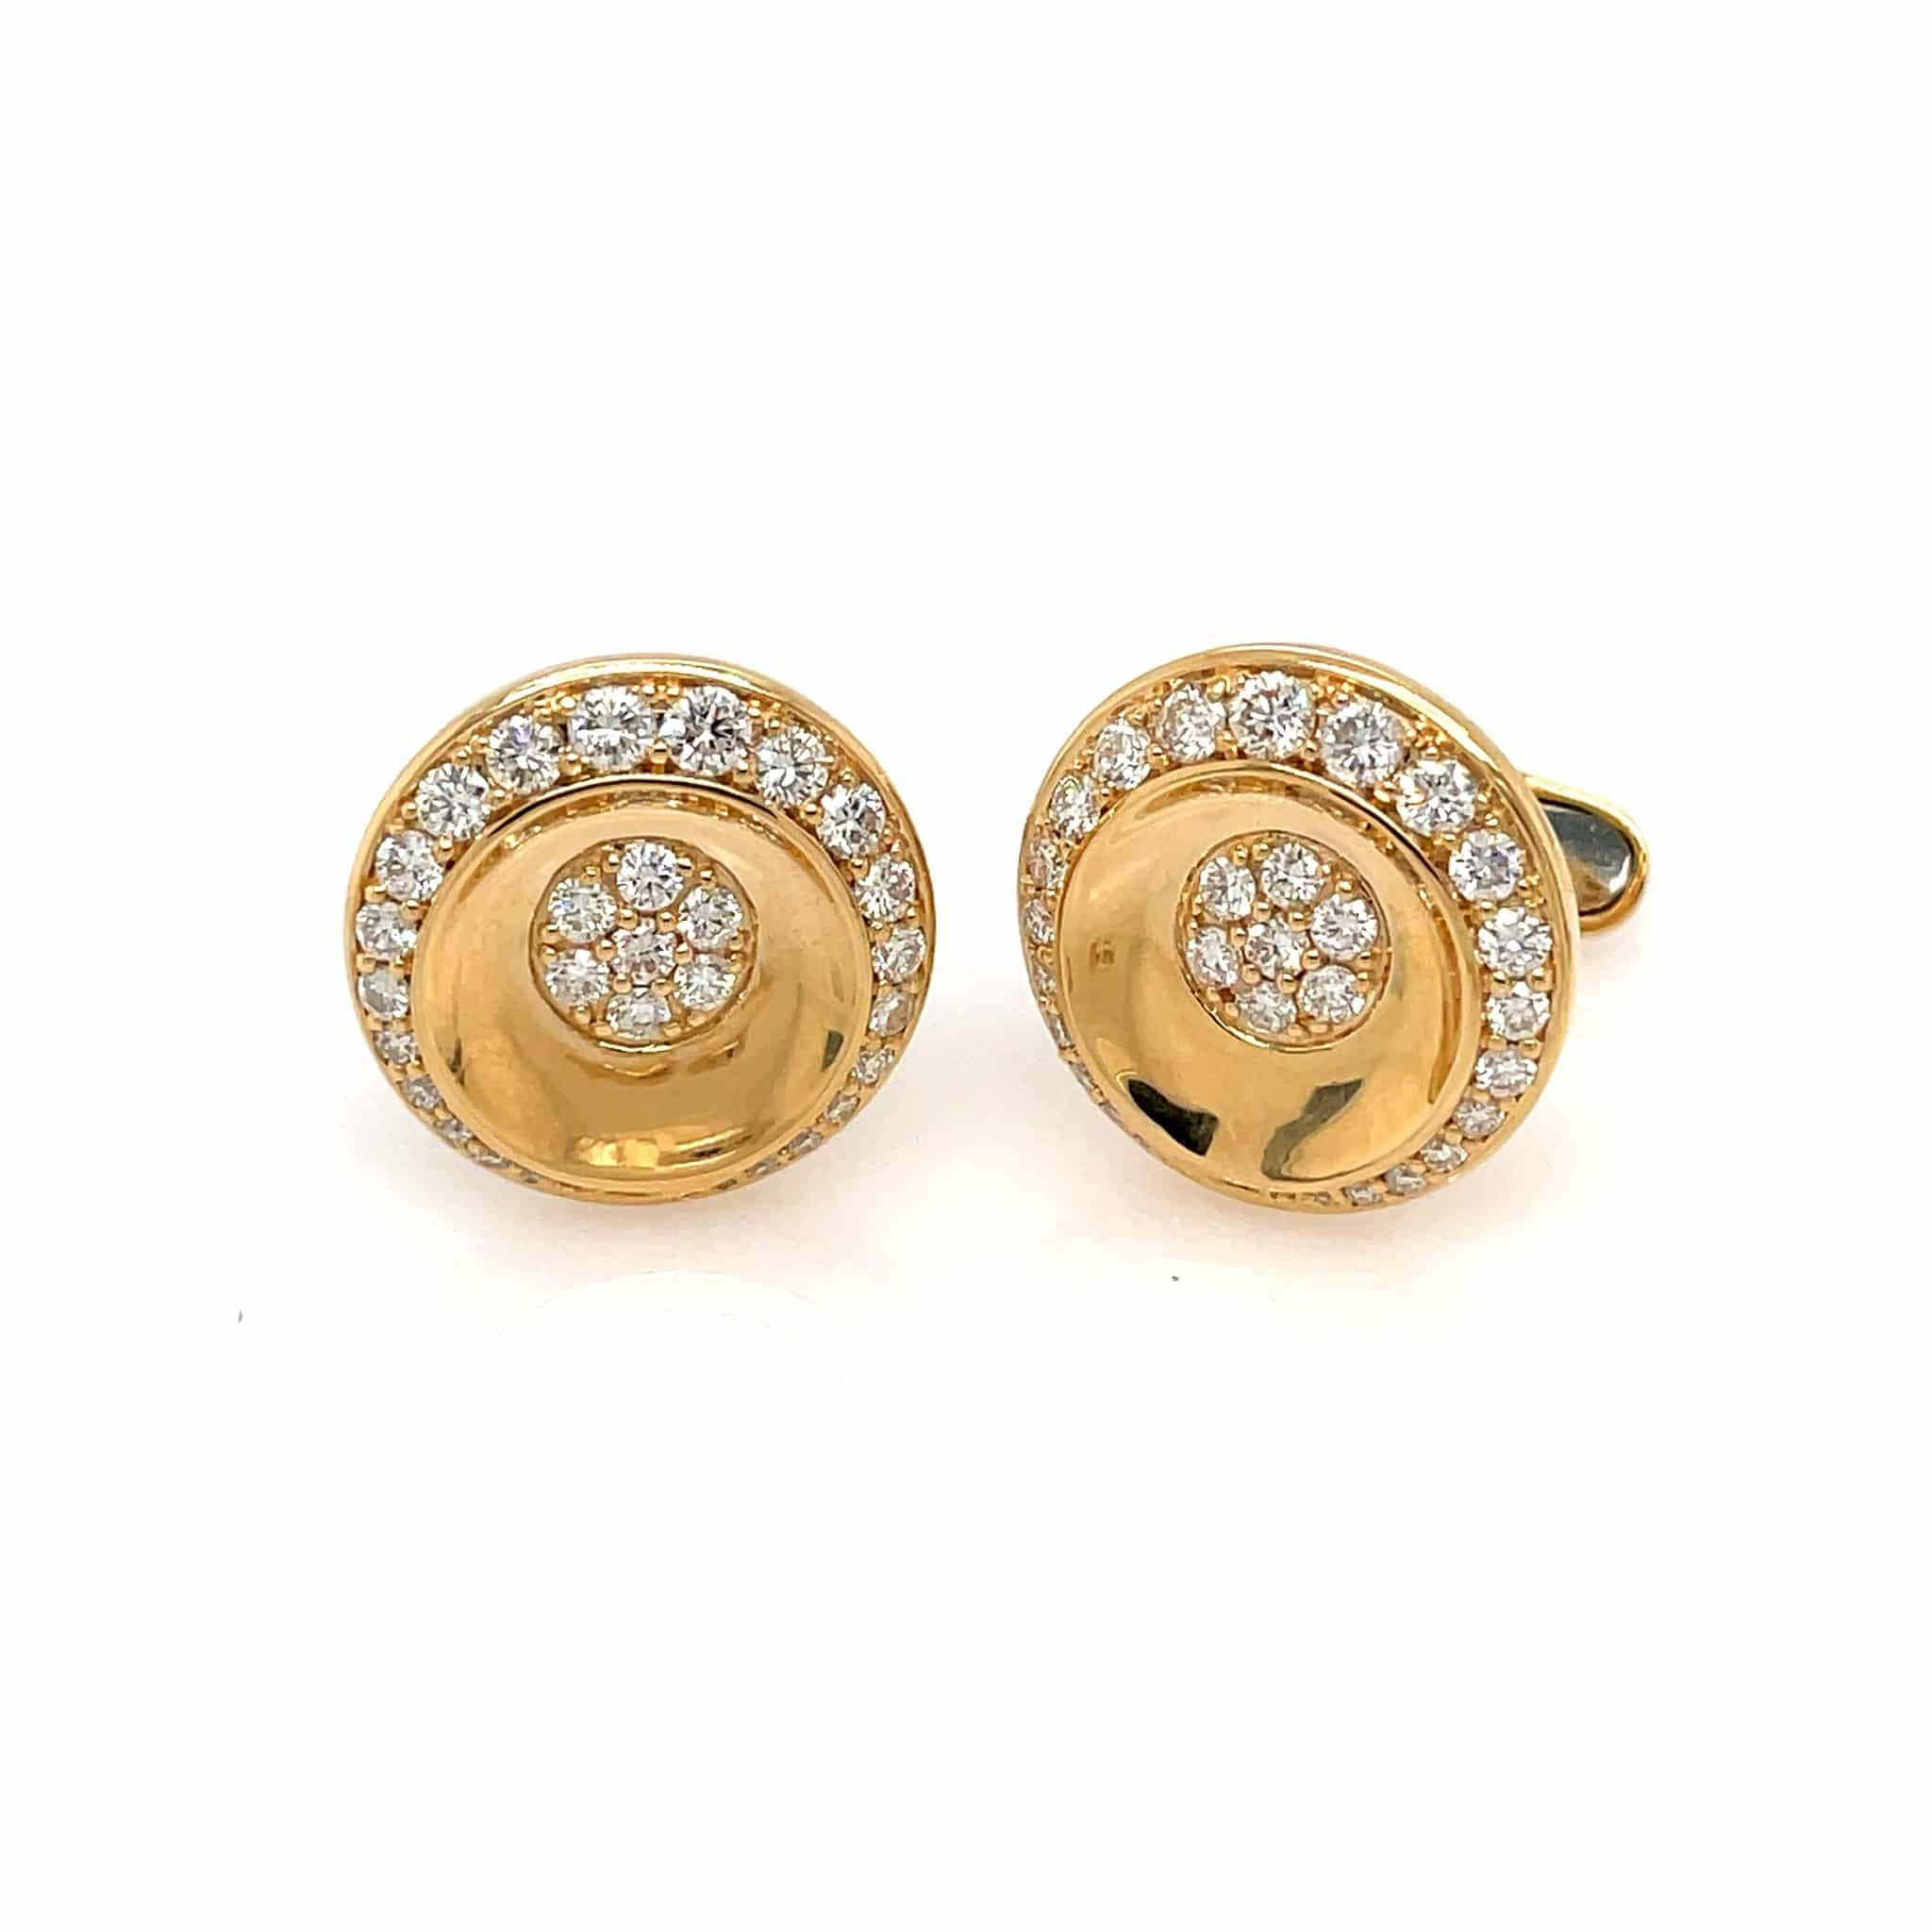 Polished Yellow Gold Cufflinks with 2.03 carats of diamonds